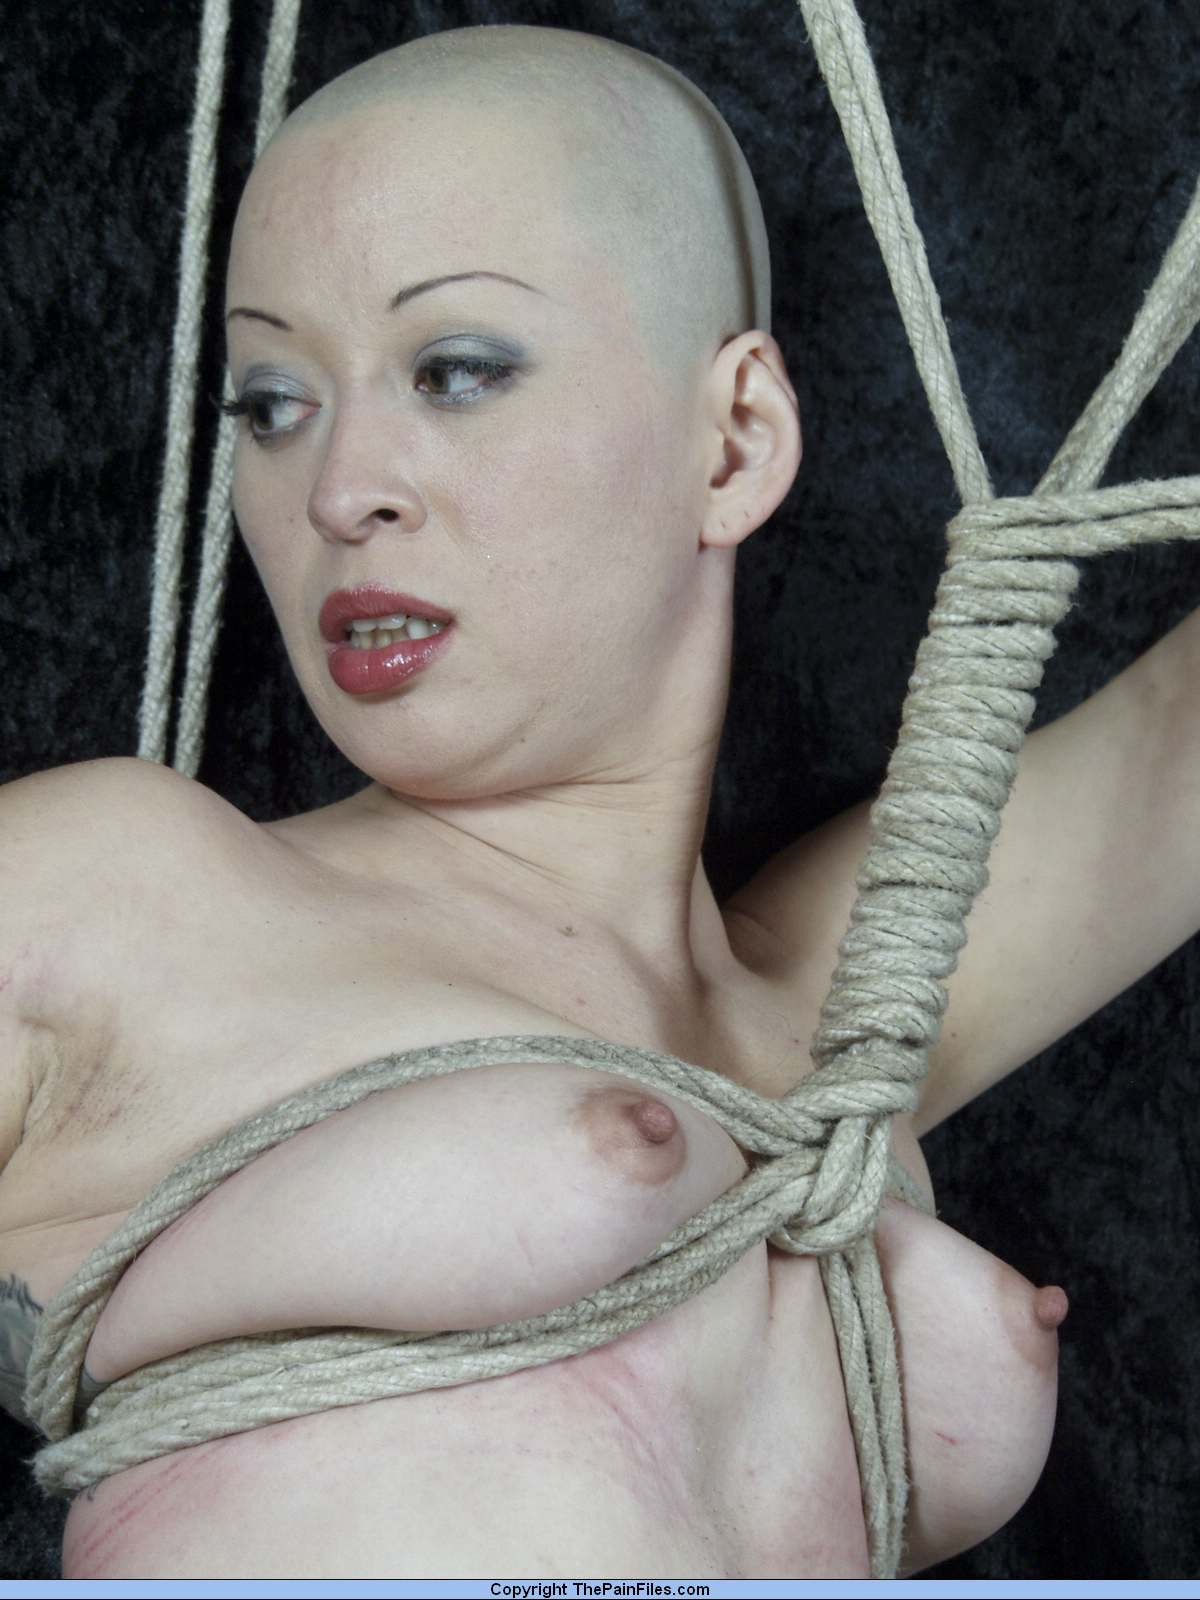 adult-bdsm-fetishe-models-wanted